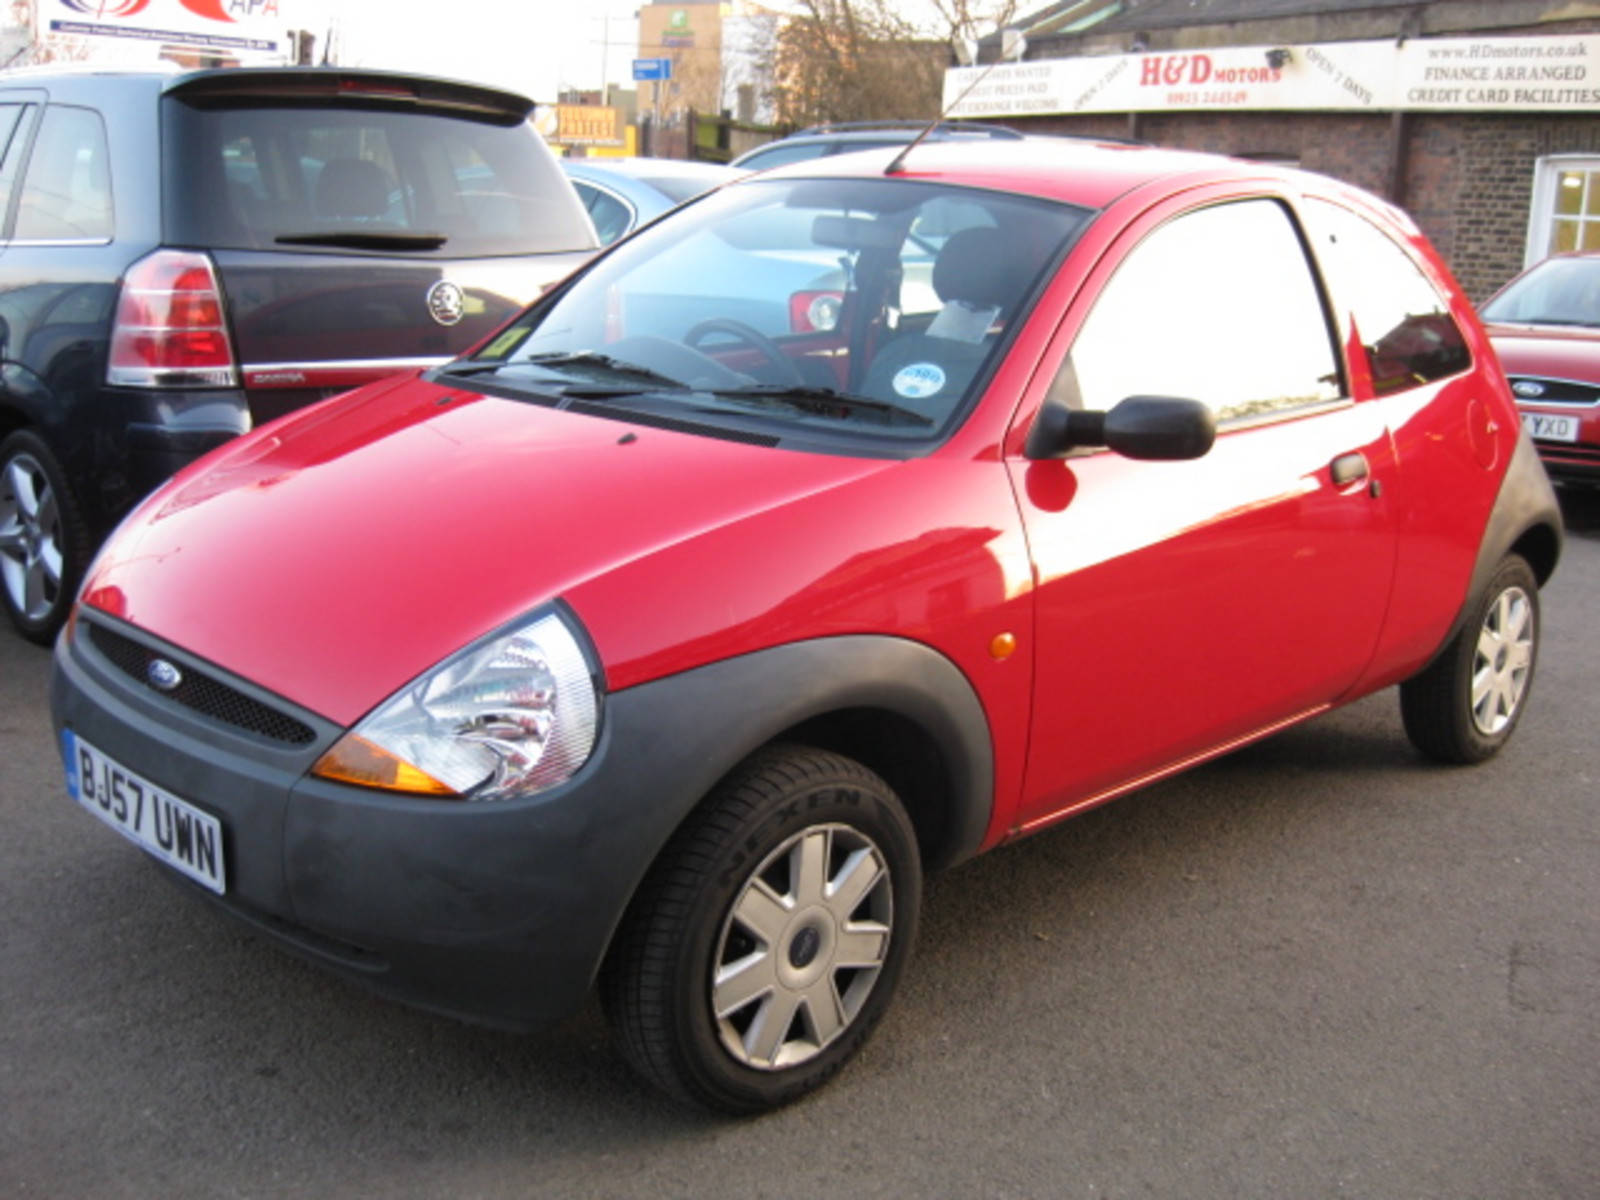 Ford Ka 1.3 Studio Hatchback Petrol Red at H & D Motors Watford